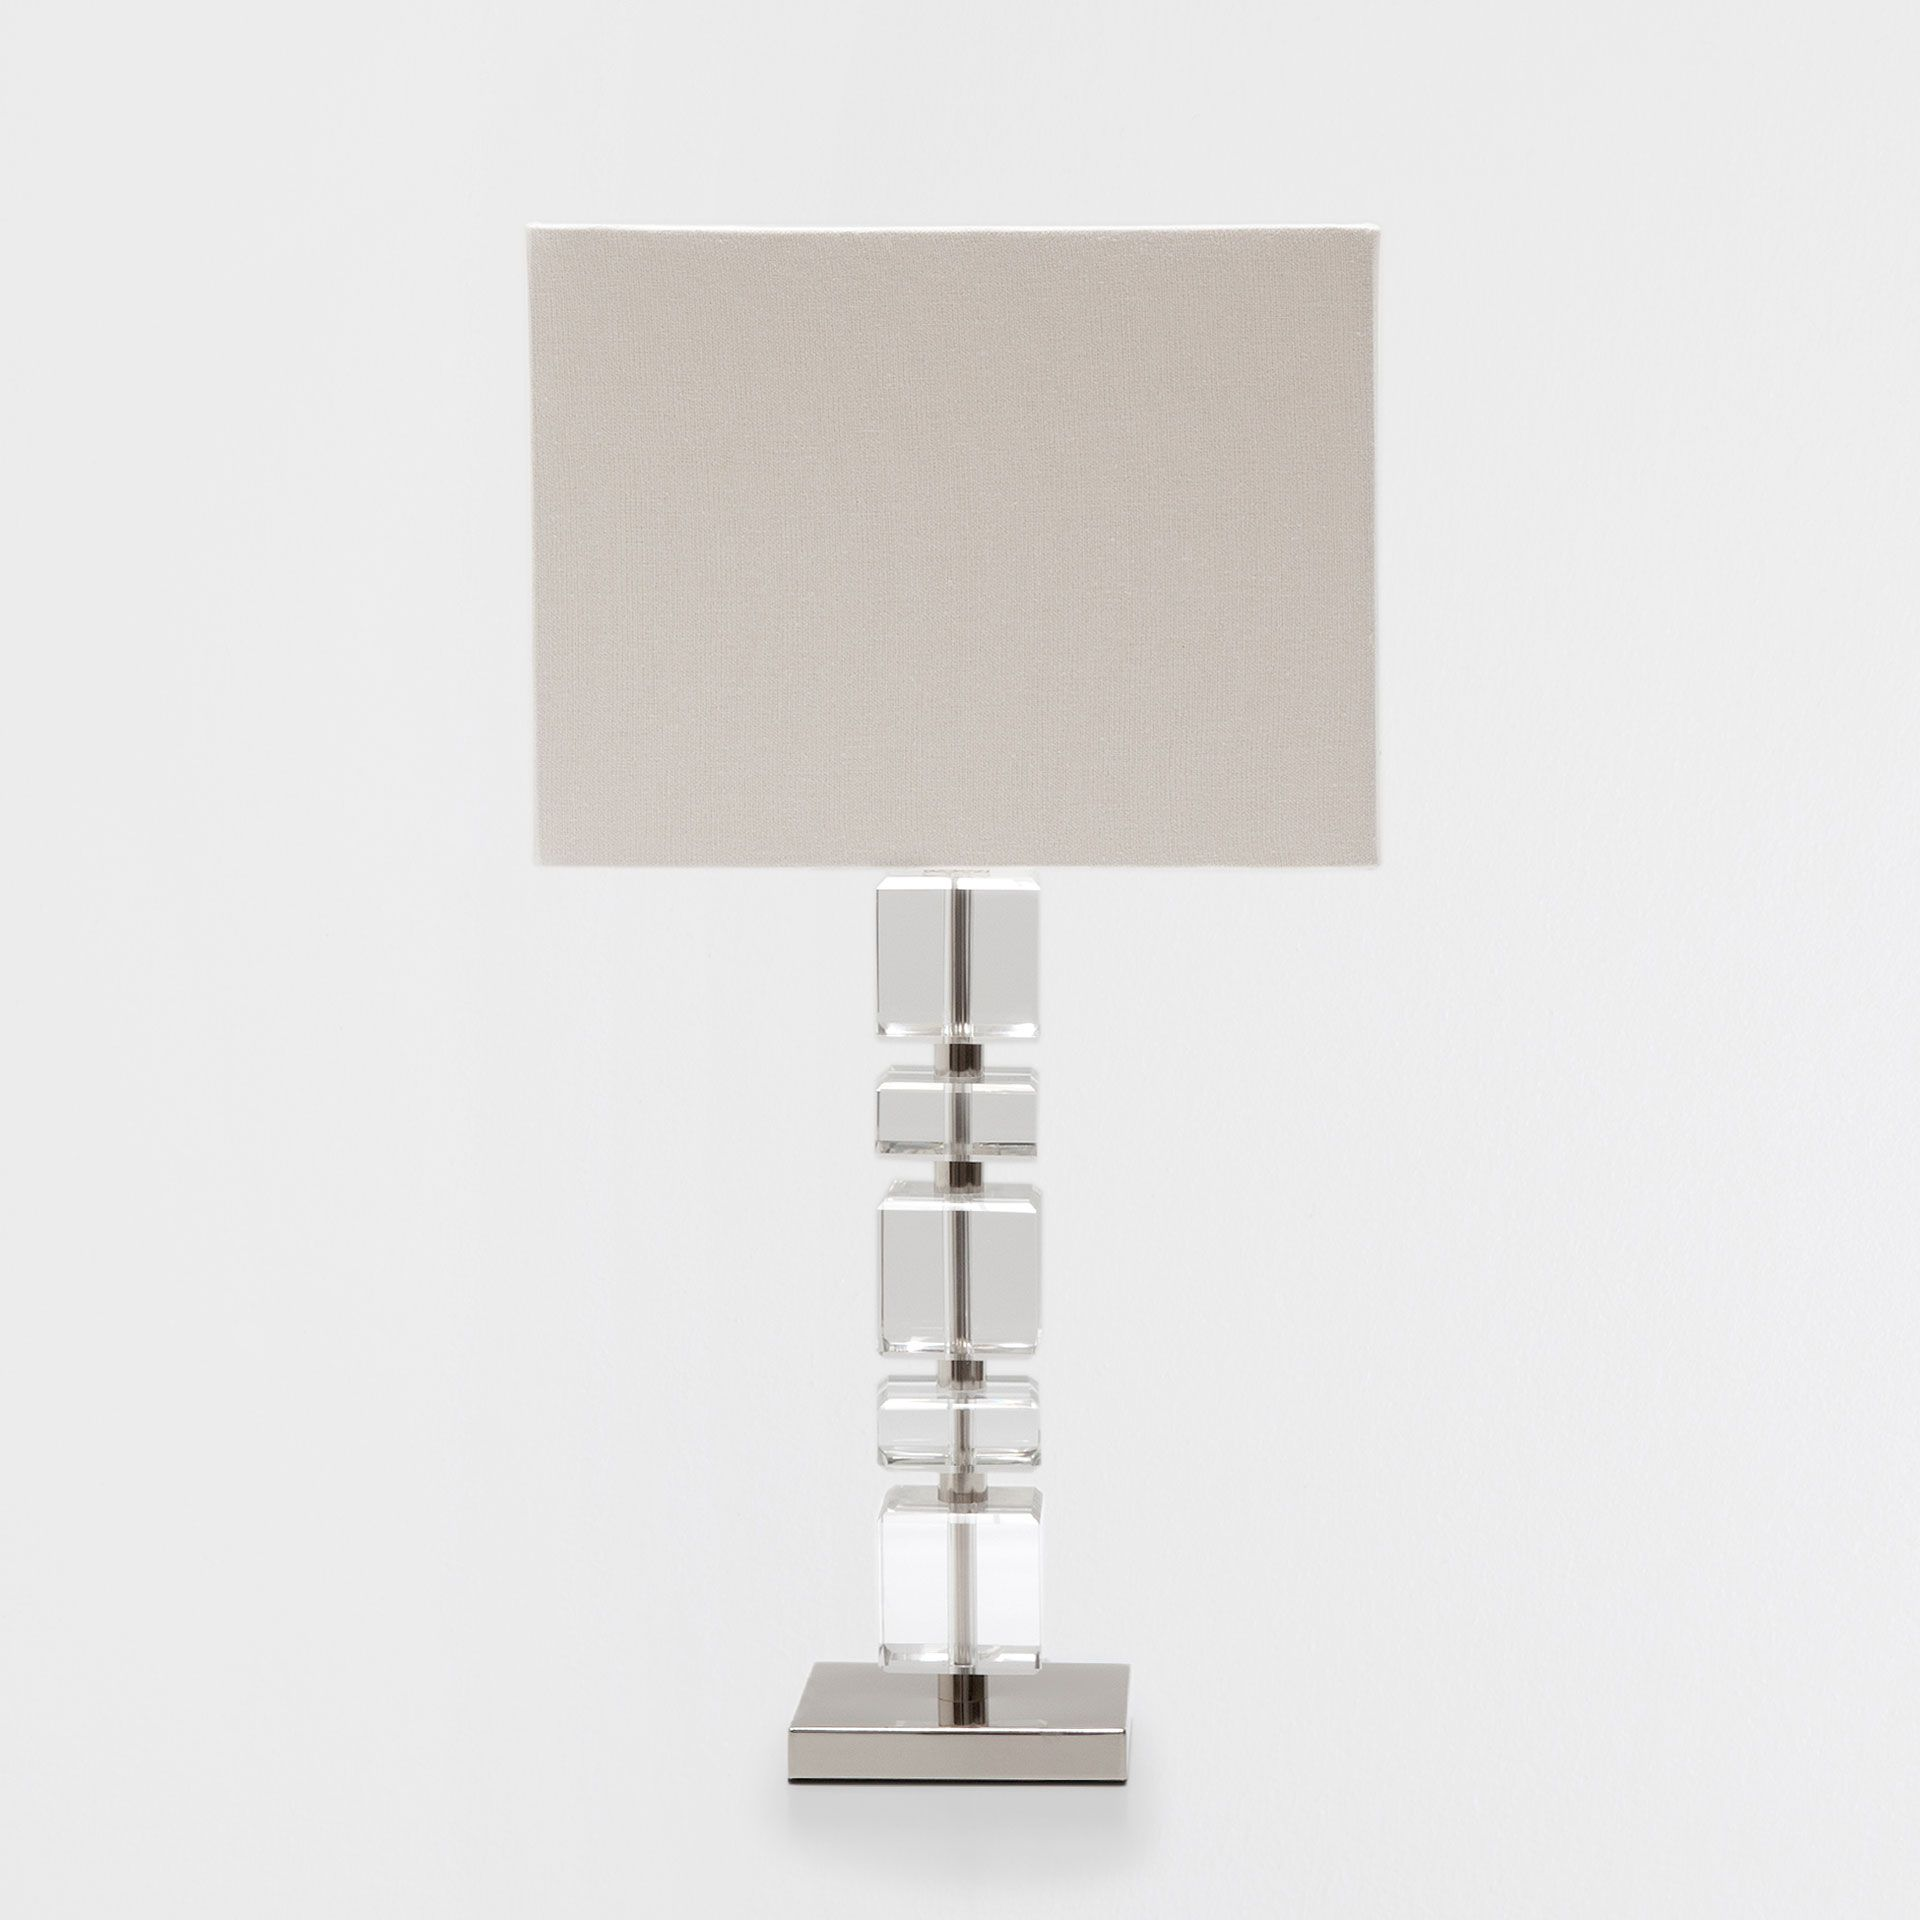 Zara Couchtisch Image 1 Of The Product Glass Cubes Lamp Dnevna Cristales